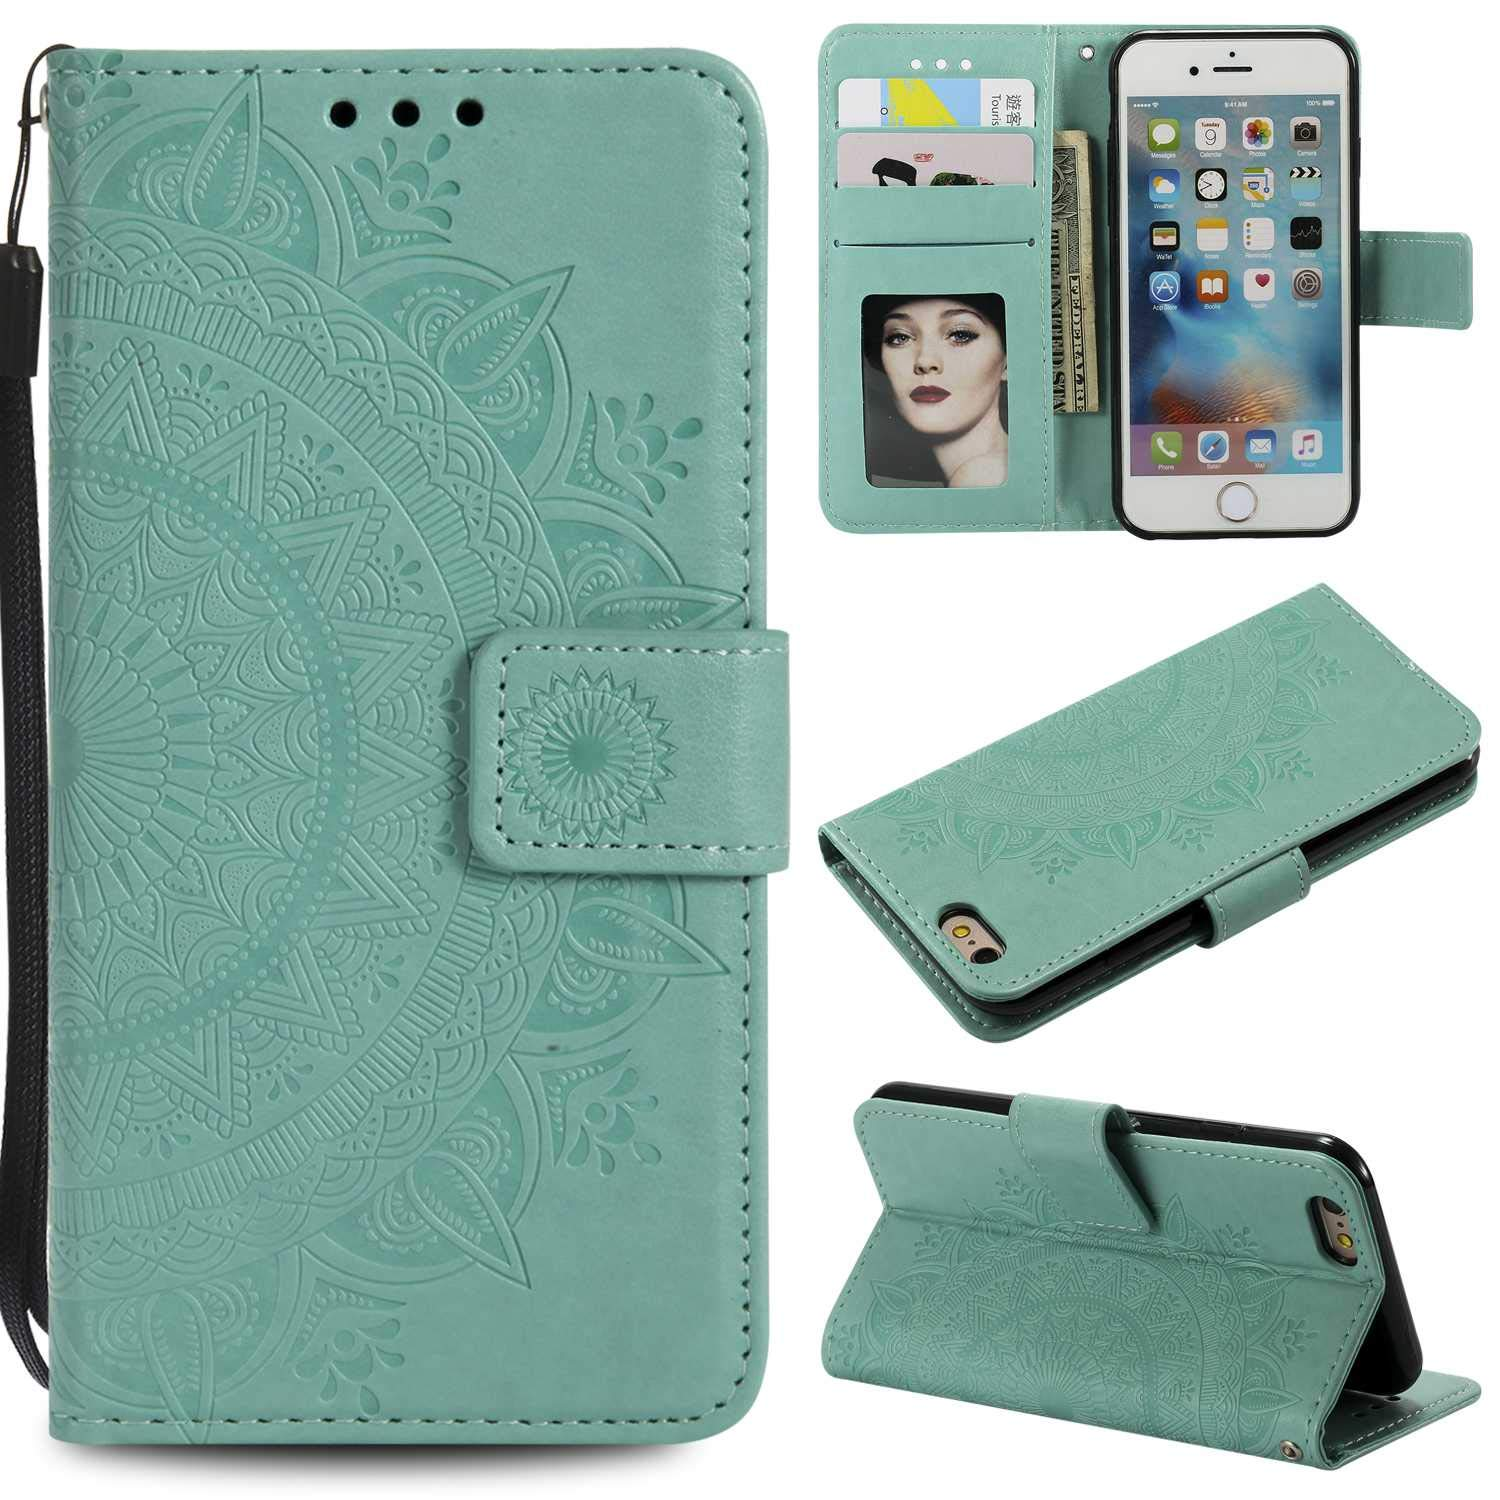 Case Huawei Mate 20 Bear Village Sale Ranking TOP5 Embossed Design Leather Cas PU